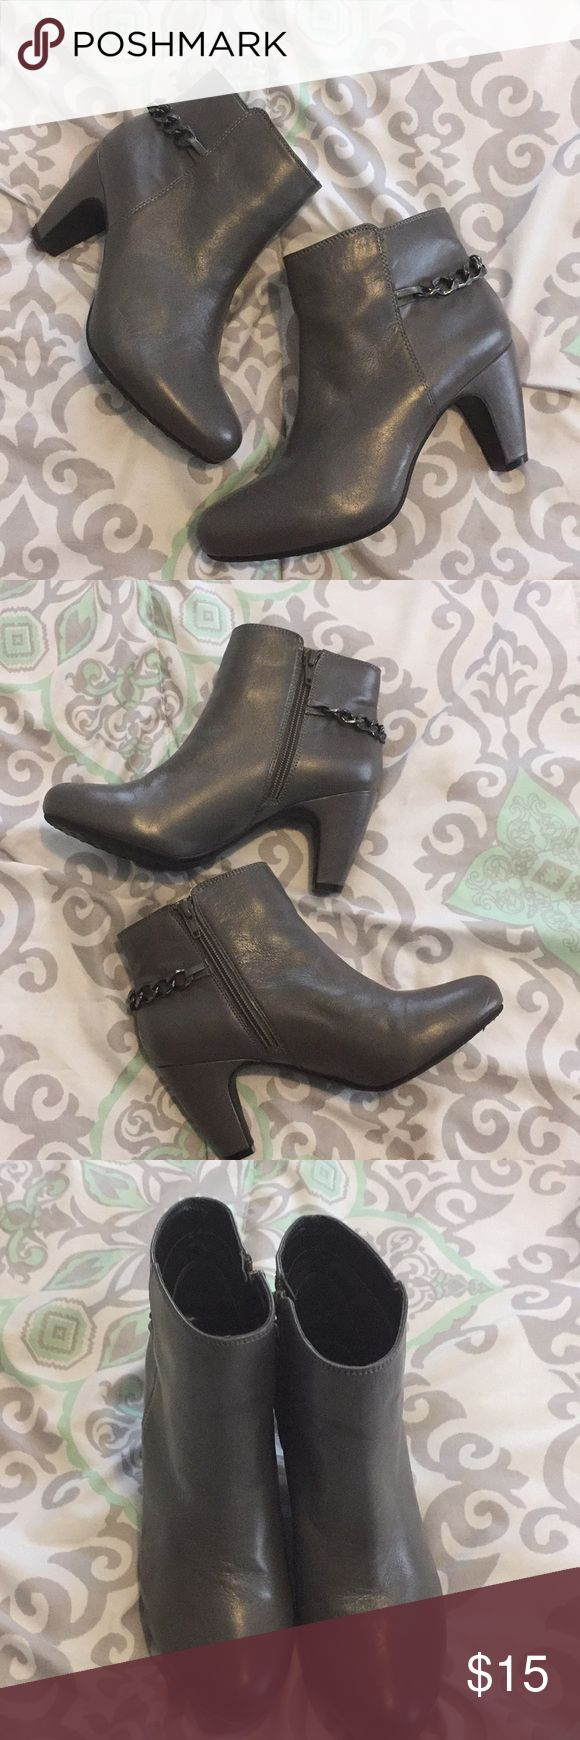 EASY SPIRIT adorable chain link bootie size 7 beautiful gray, super cute easy spirit women's booties! Gently used. ❤️ happy poshing!! Easy Spirit Shoes Ankle Boots & Booties